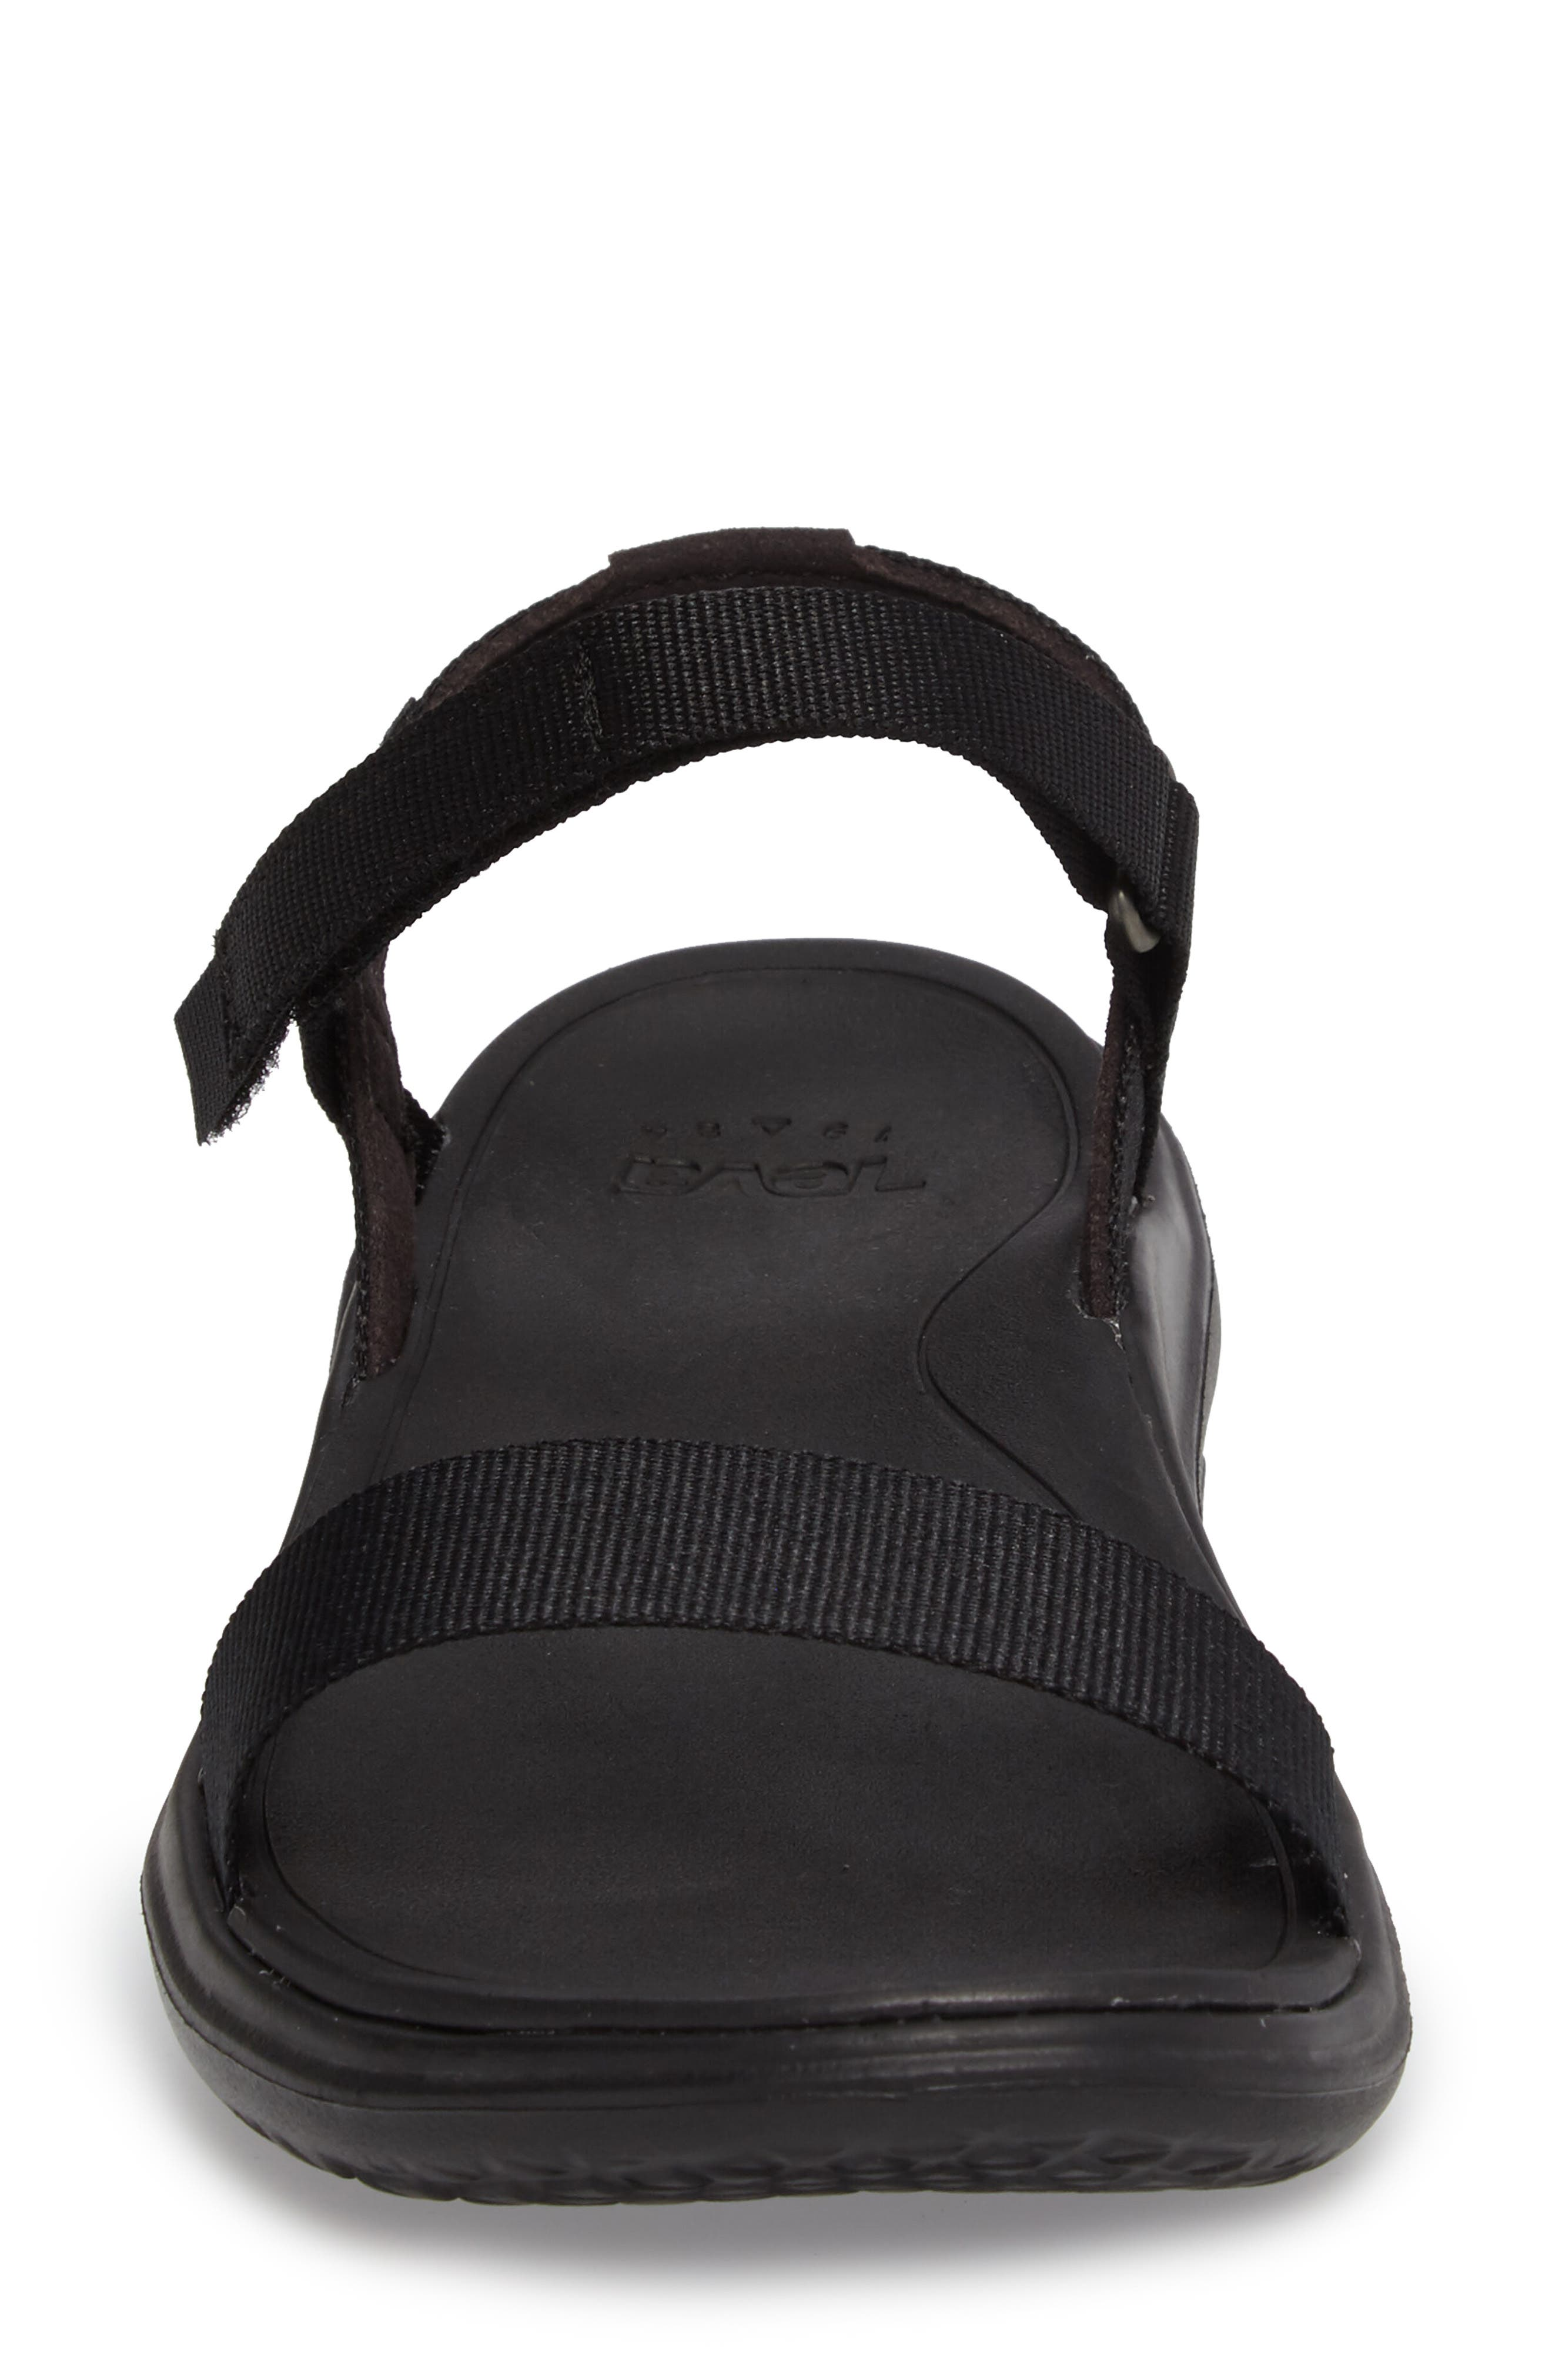 Terra Float Nova Sandal,                             Alternate thumbnail 4, color,                             Black Fabric